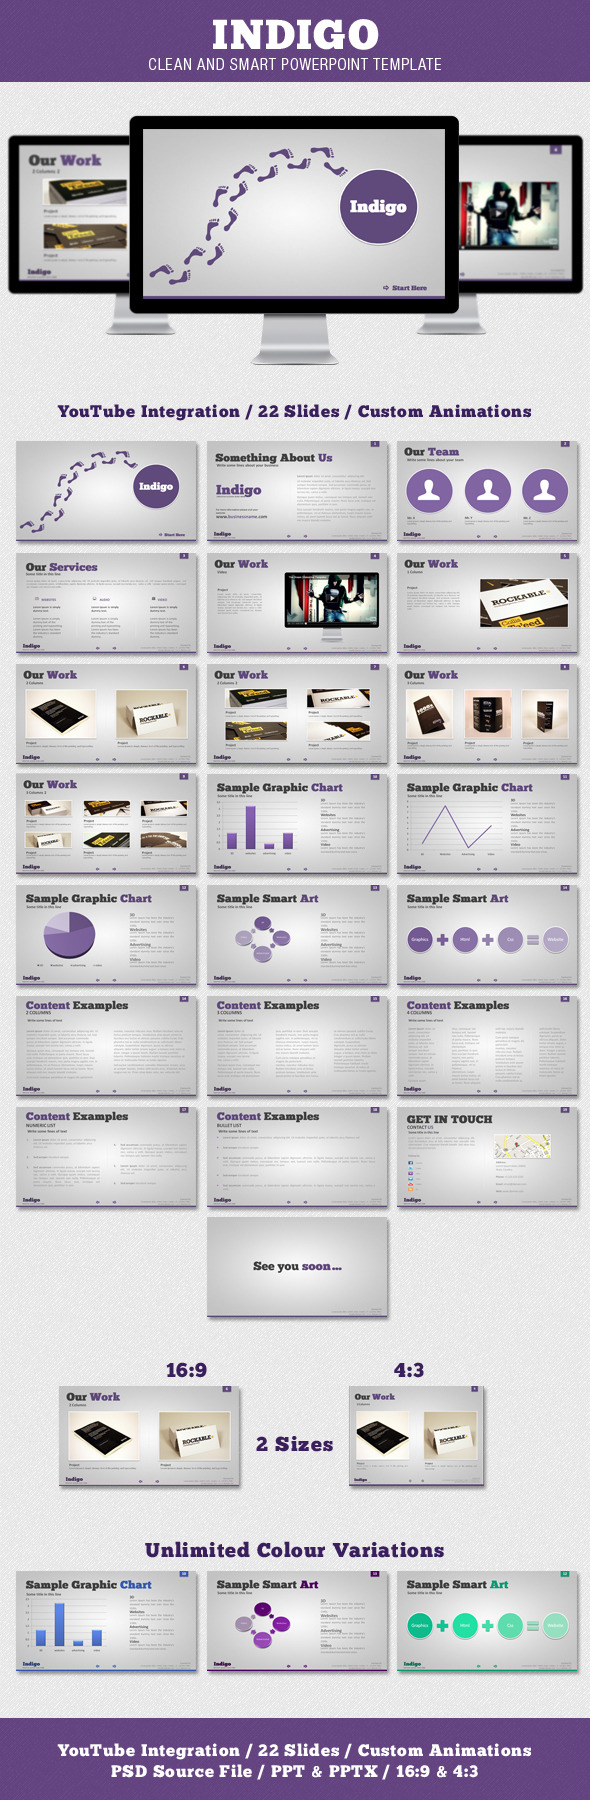 Indigo - Clean and Smart Powerpoint Template - PowerPoint Templates Presentation Templates